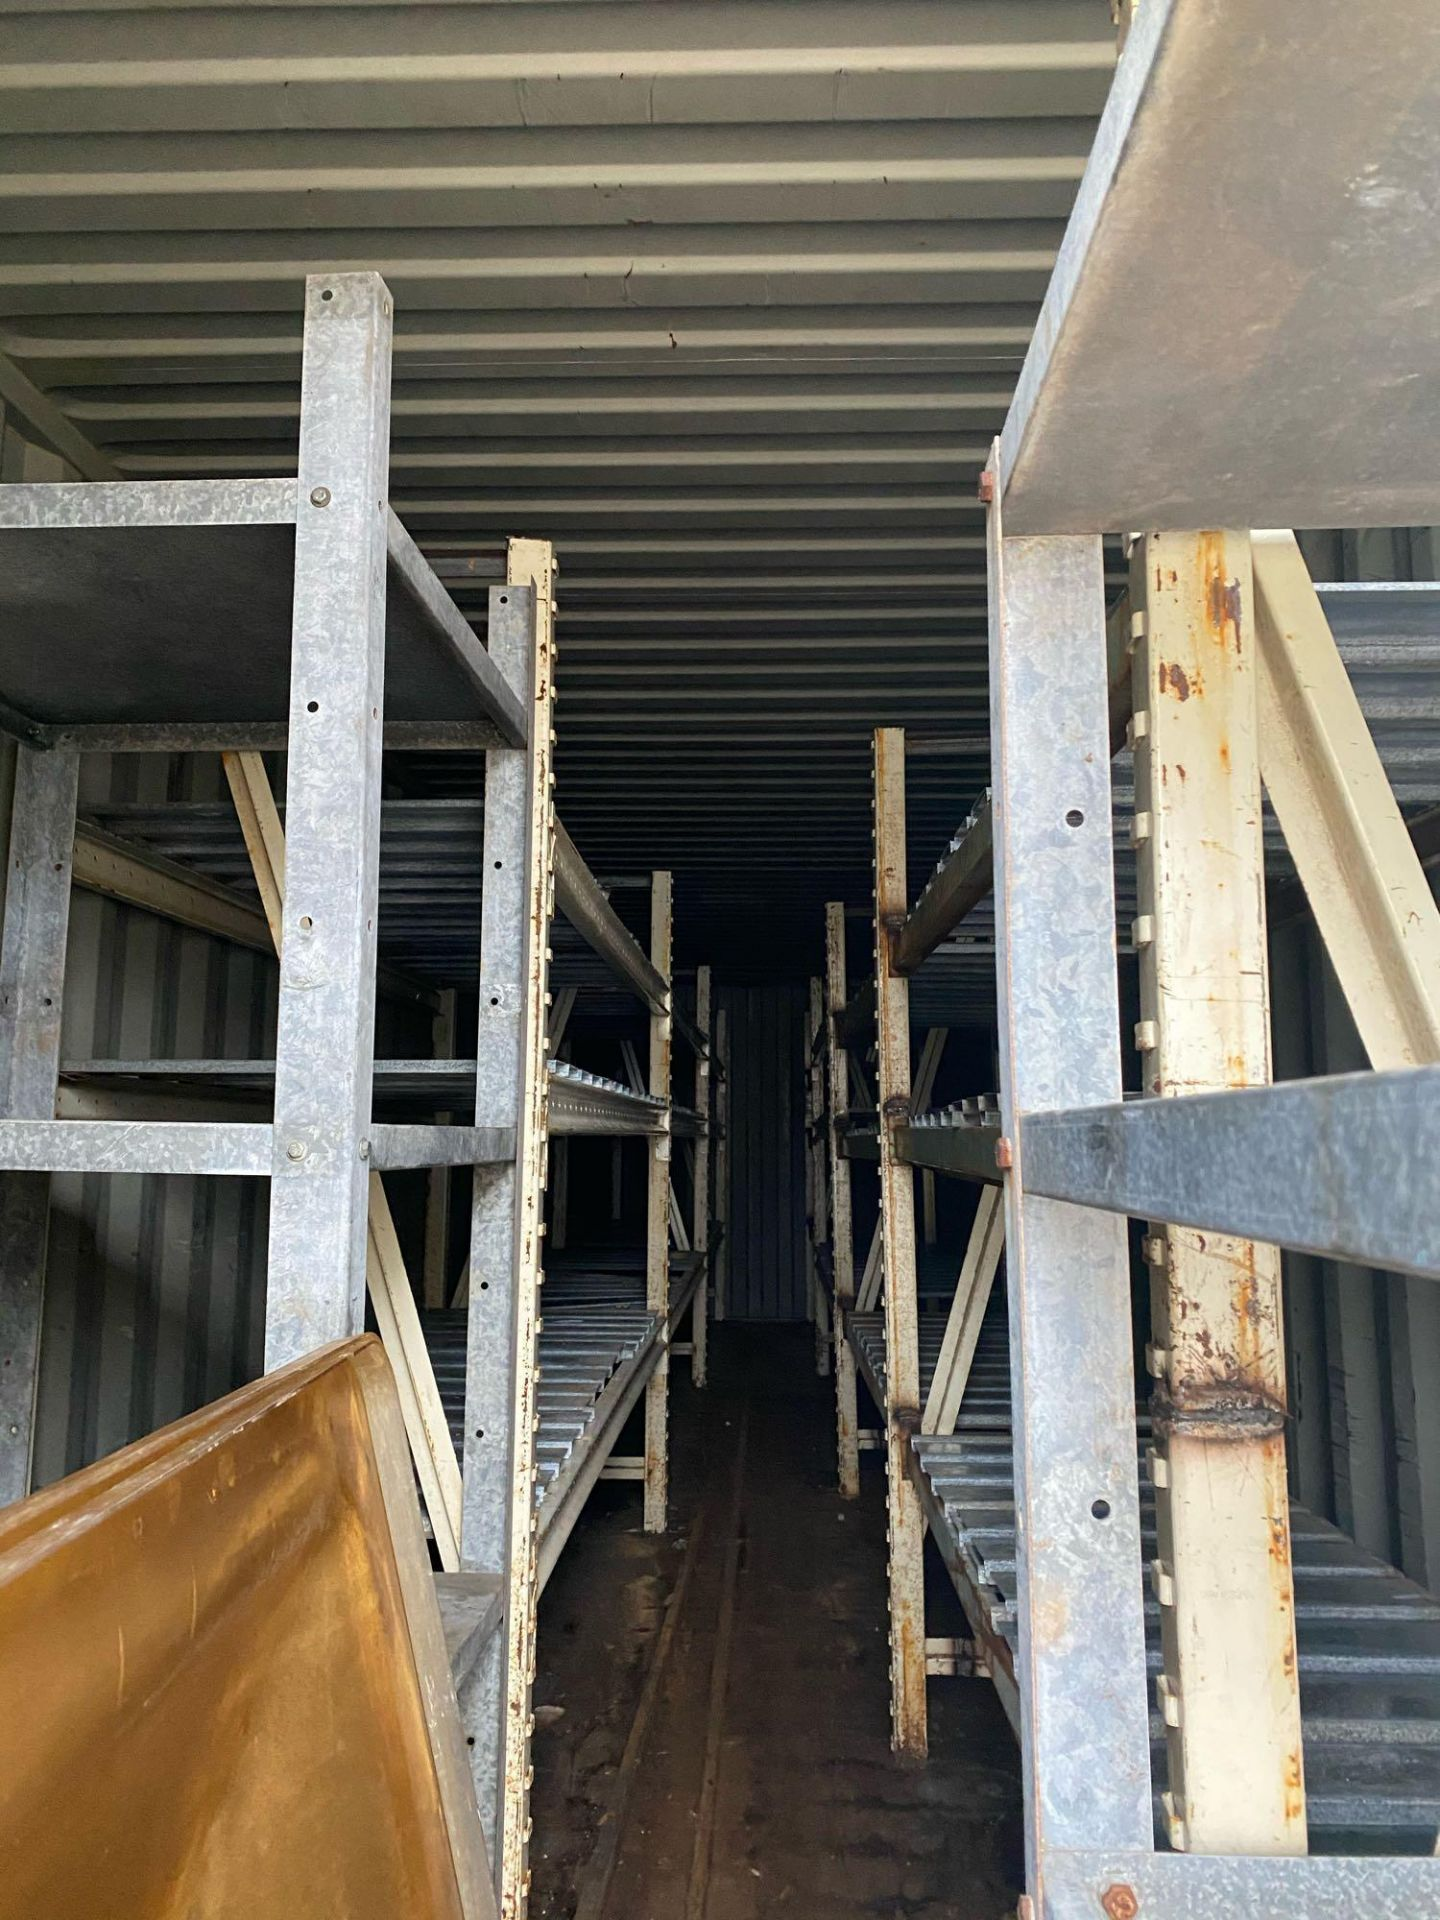 Shipping Containers - Image 4 of 4